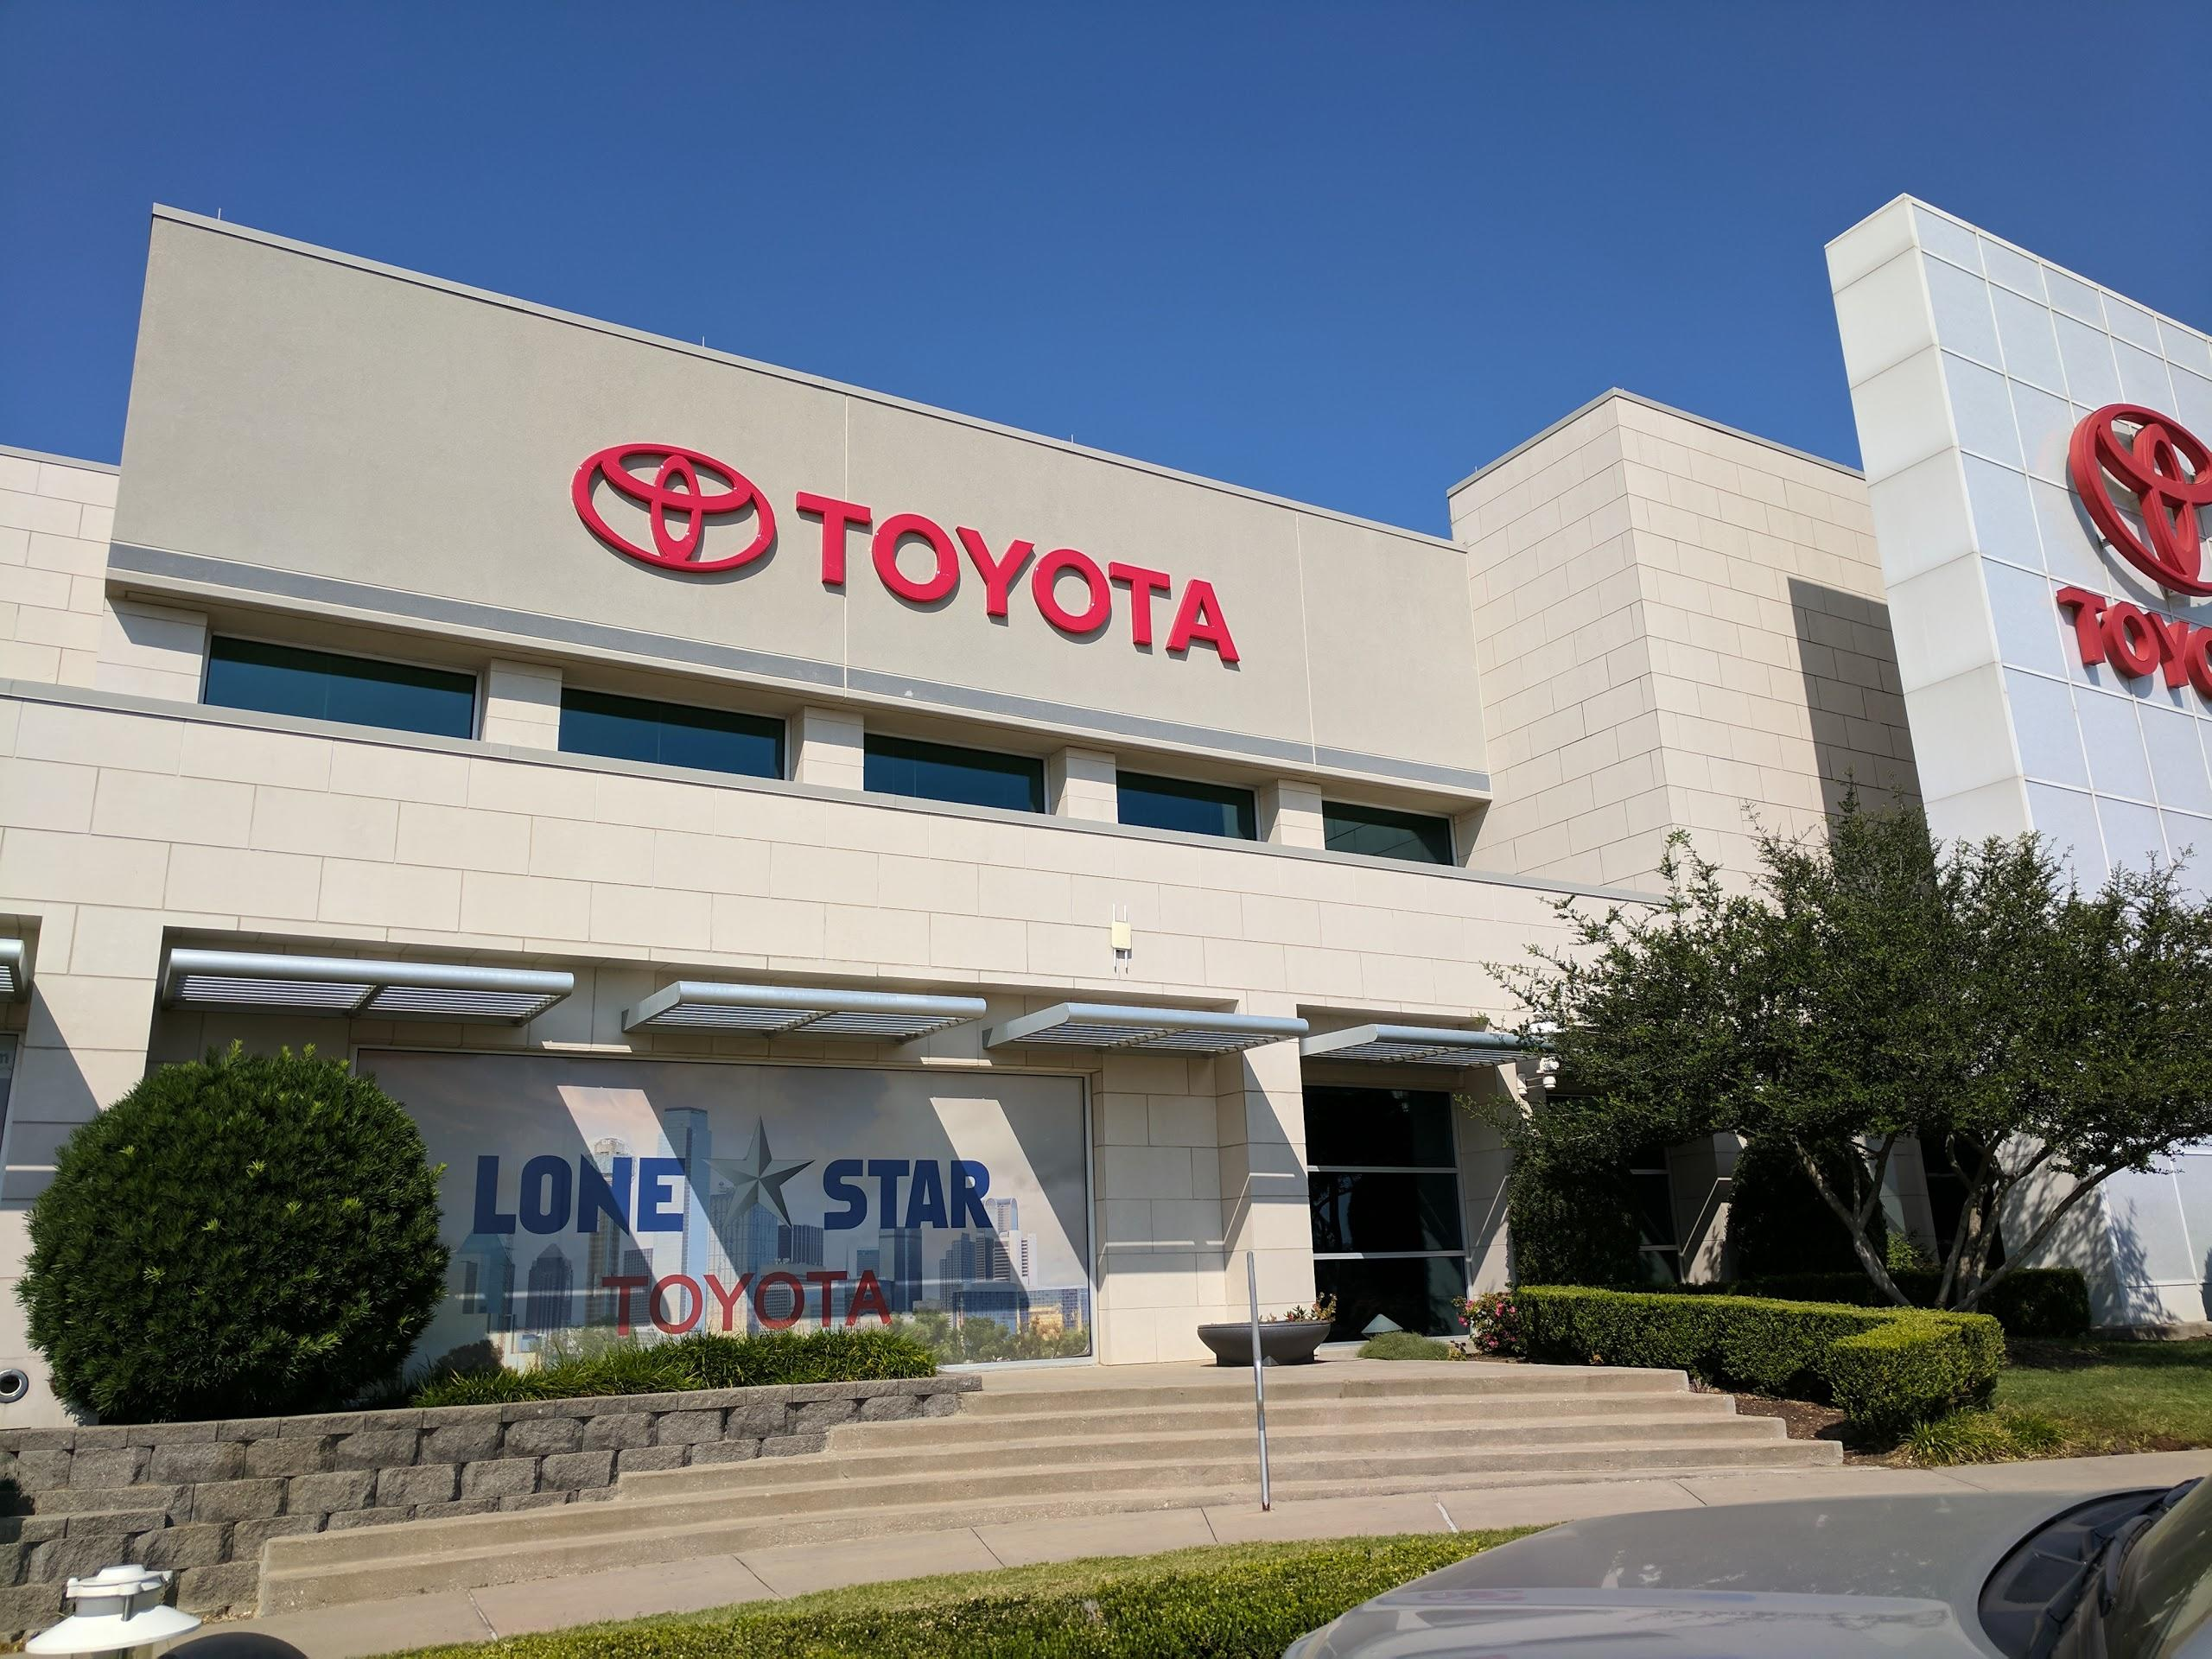 Lone Star Toyota of Lewisville image 4